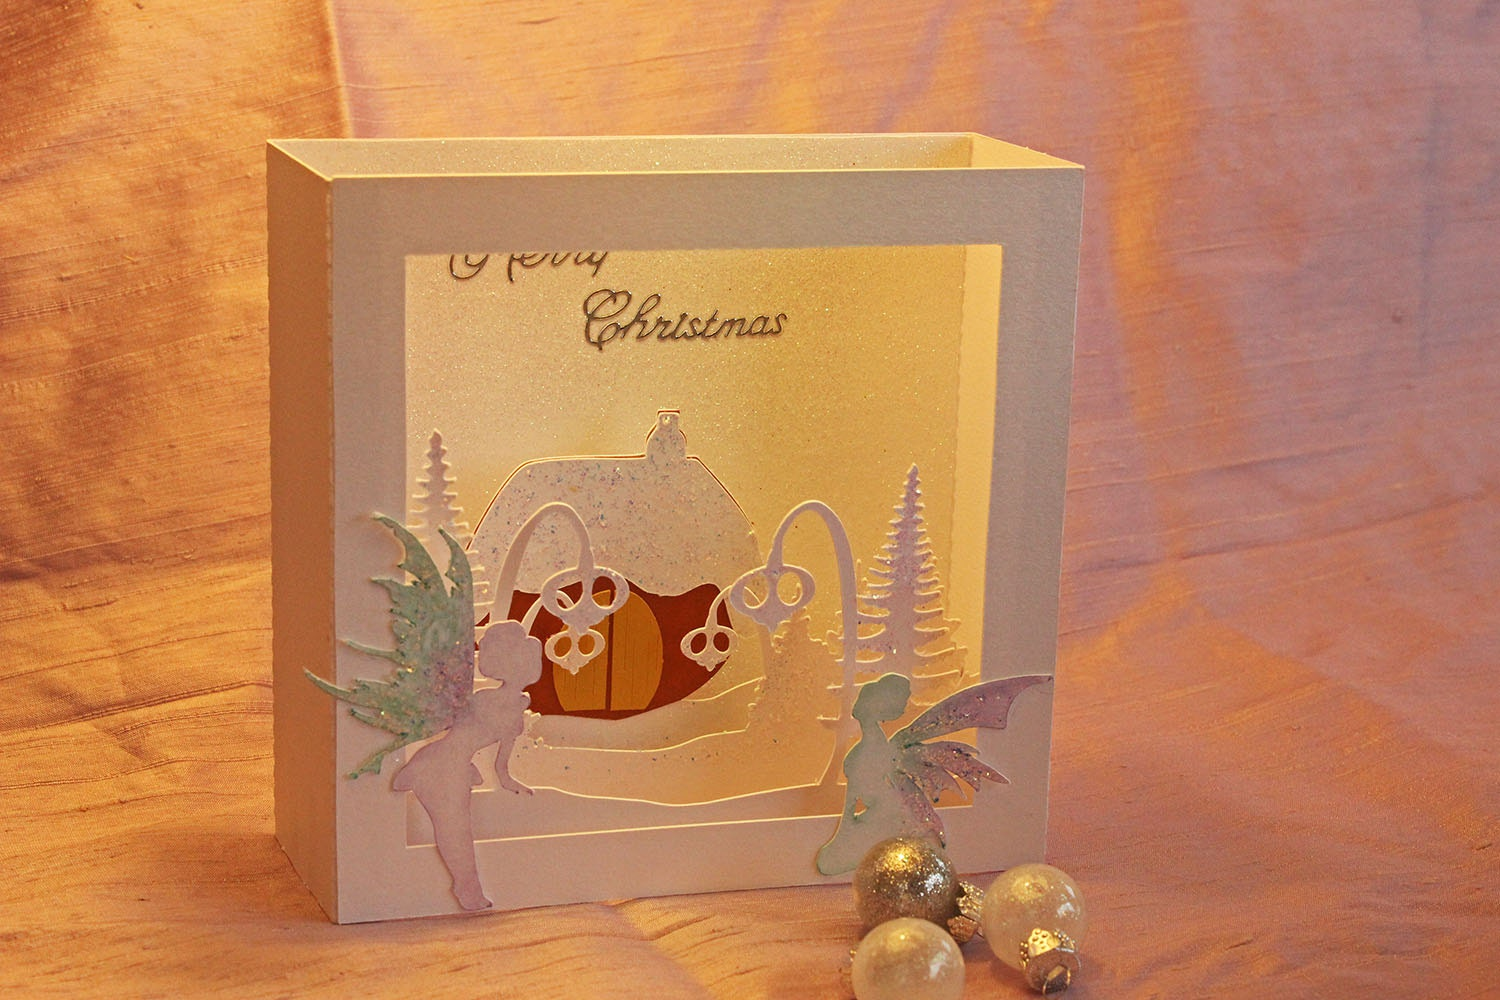 Svg 3d fairy house christmas card digital download for 3d xmas cards to make